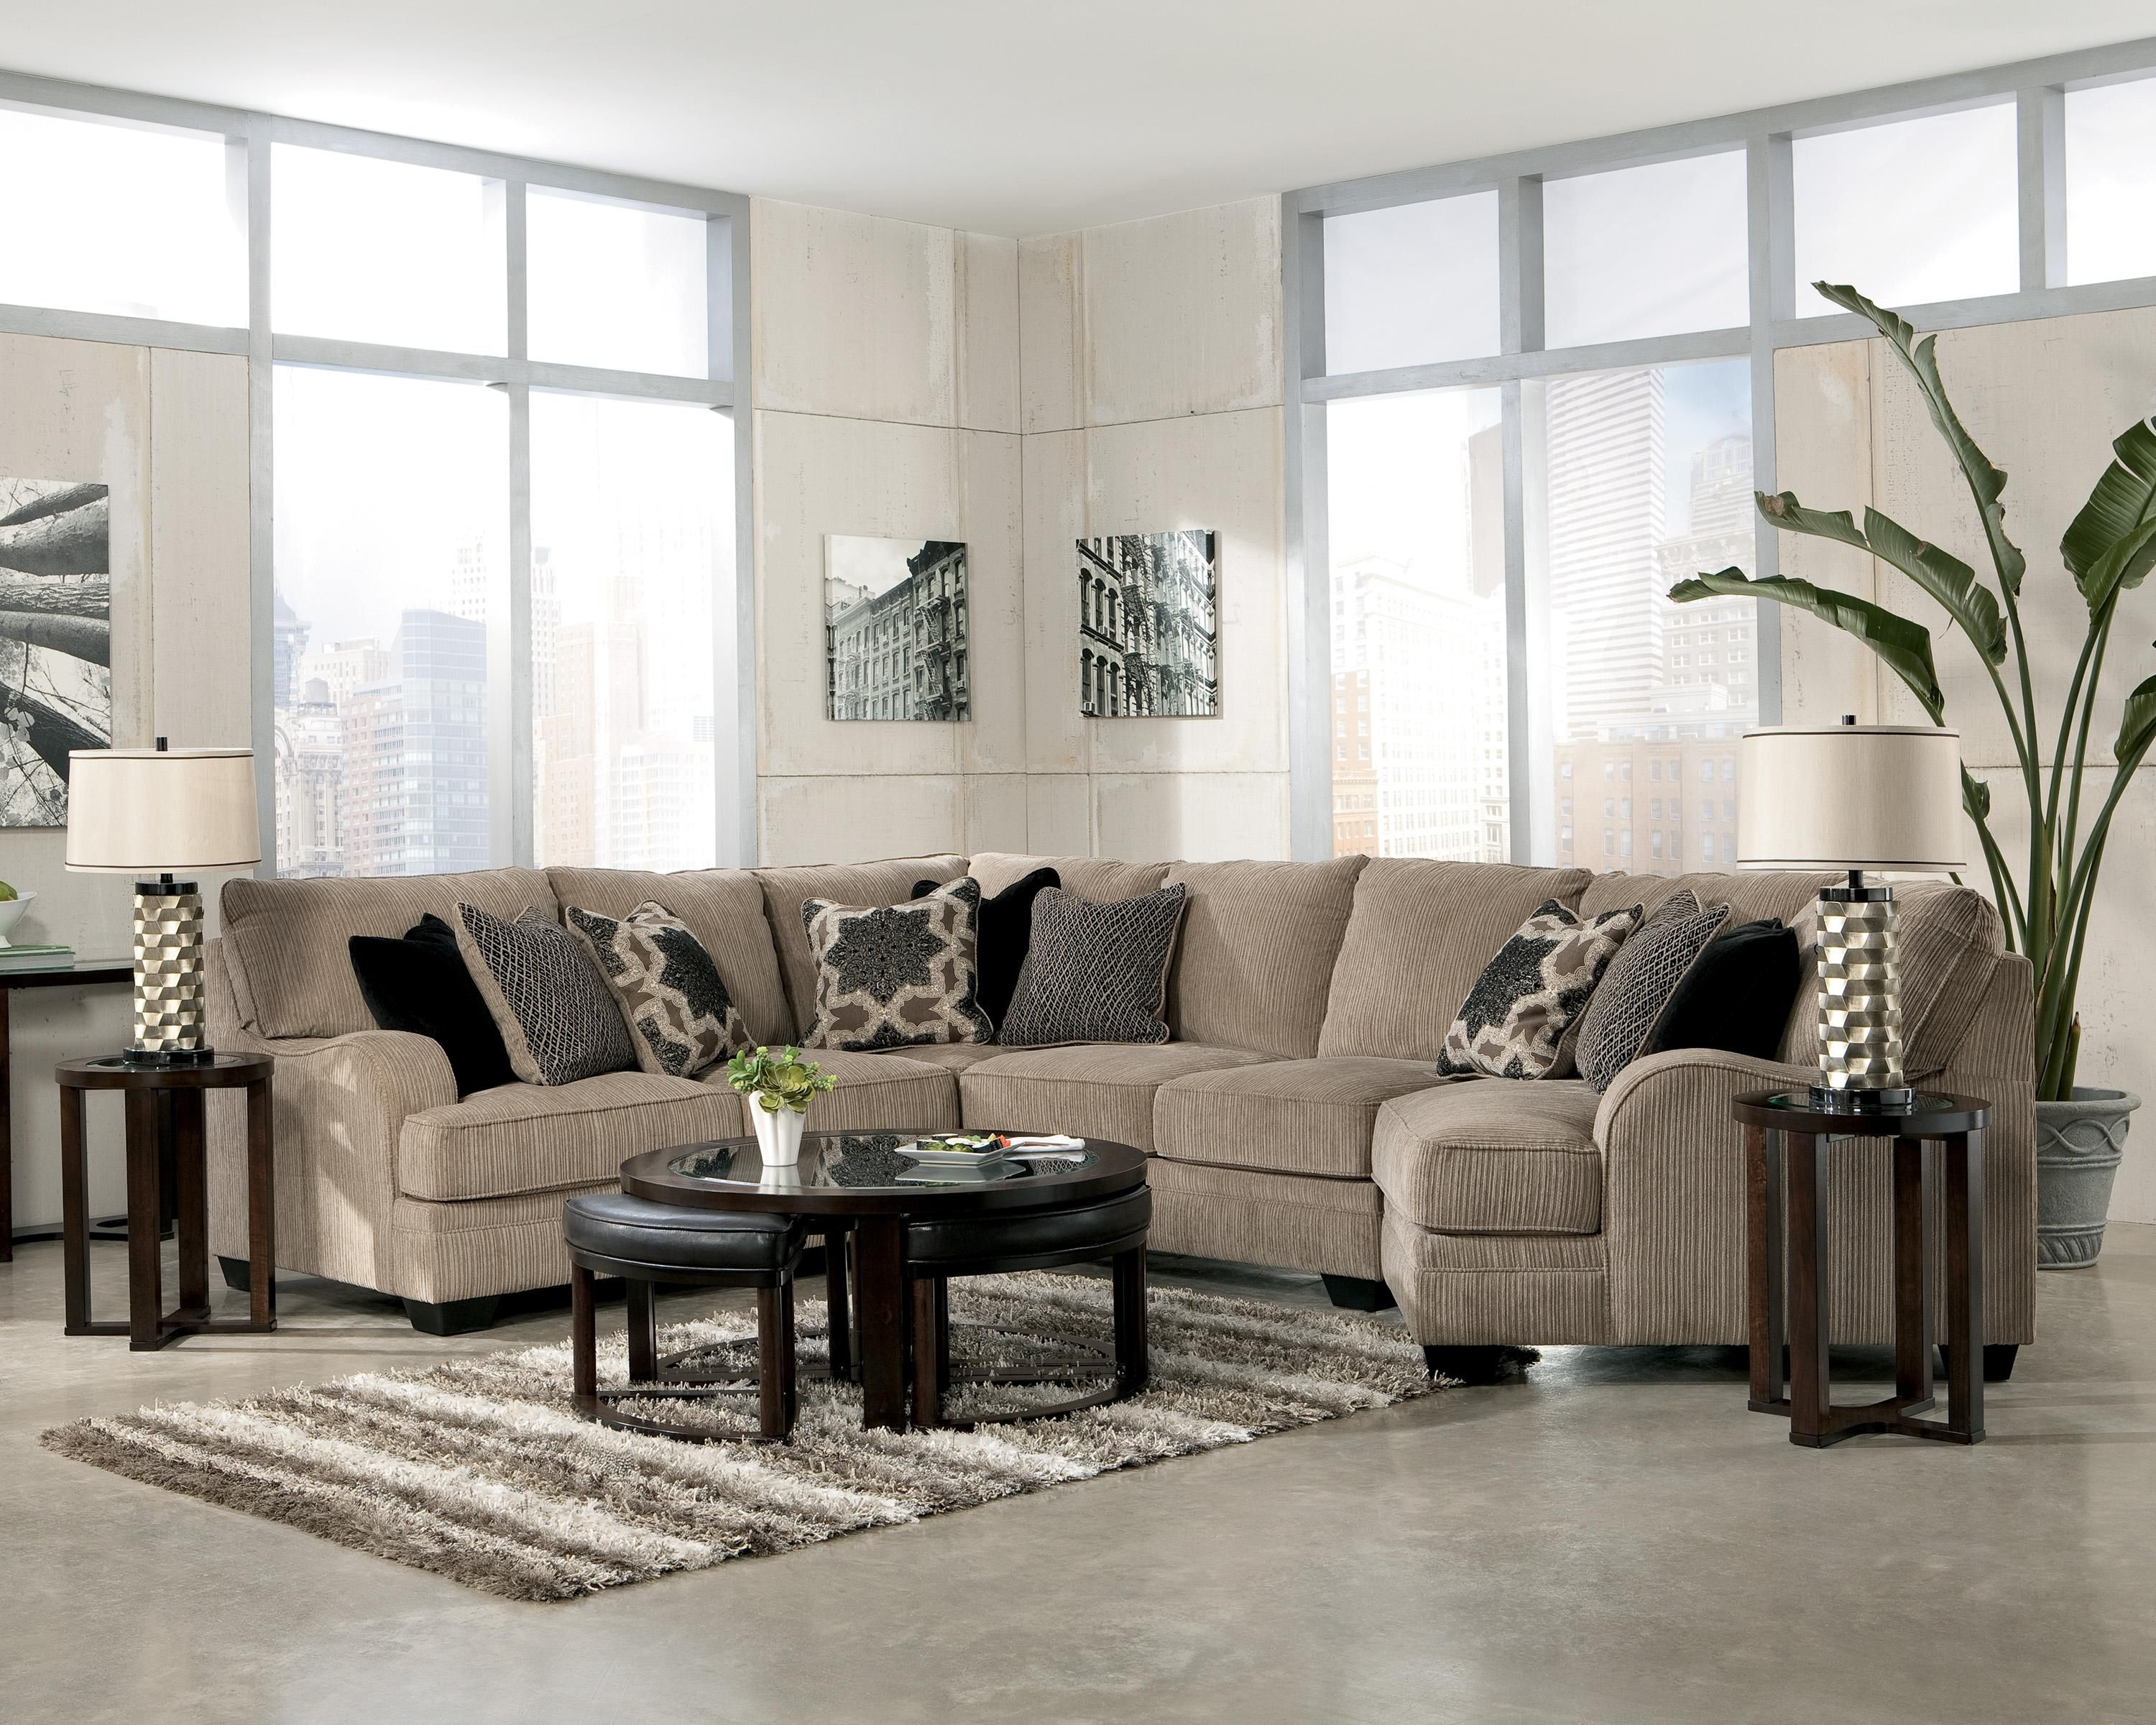 Signature Design By Ashley Furniture Katisha   Platinum 4 Piece Sectional  Sofa With Right Cuddler